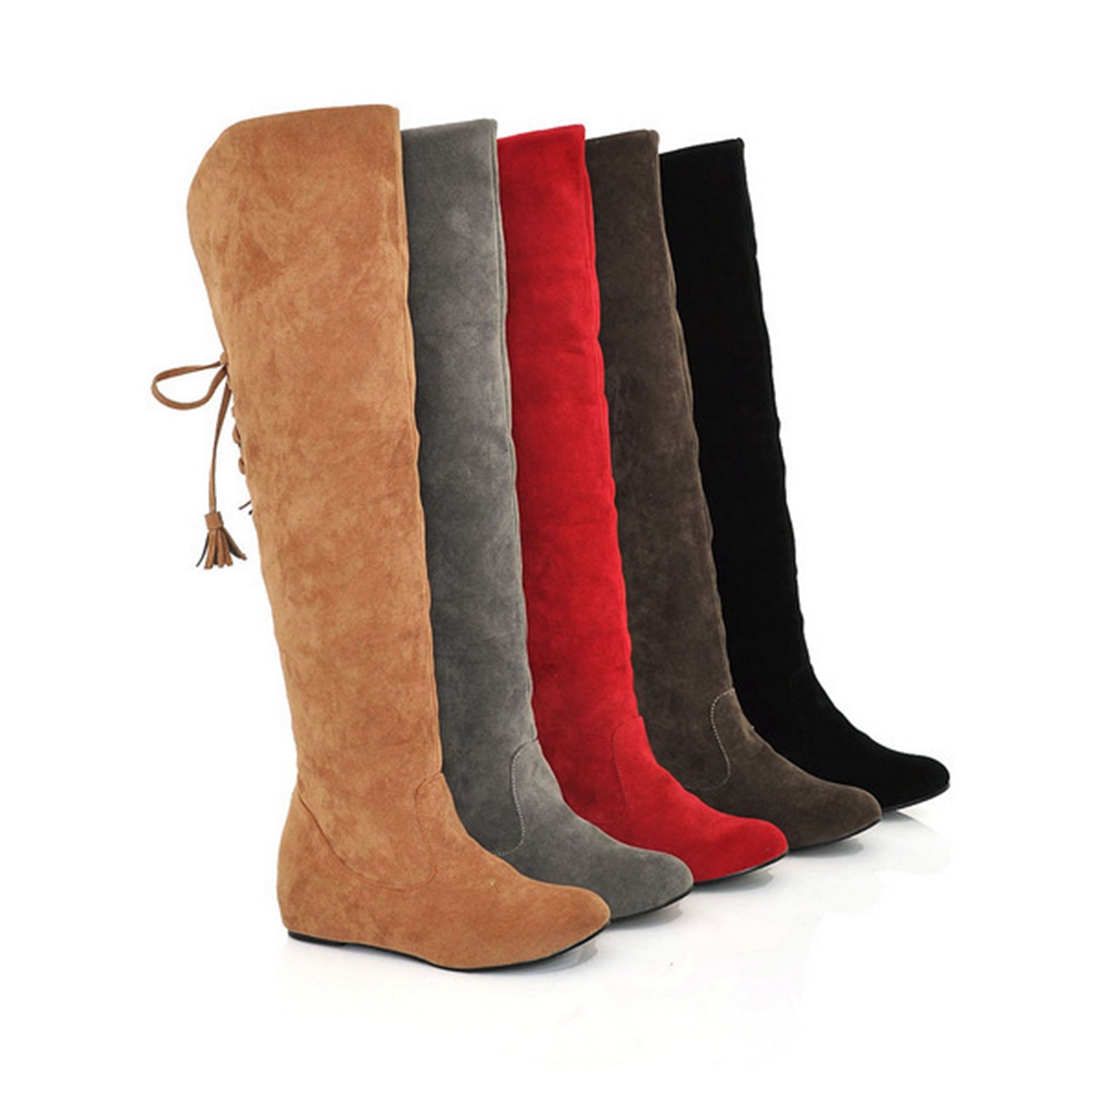 2016 Women Winter Boots New Over The Knee Thigh High Boots Shoes Women Motorcycle Flats Long Boots Low Heel Seude Leather Shoes avvvxbw 2016 new brand long boots fashion elastic over the knee boots shoes woman square heel genuine leather thigh high boots